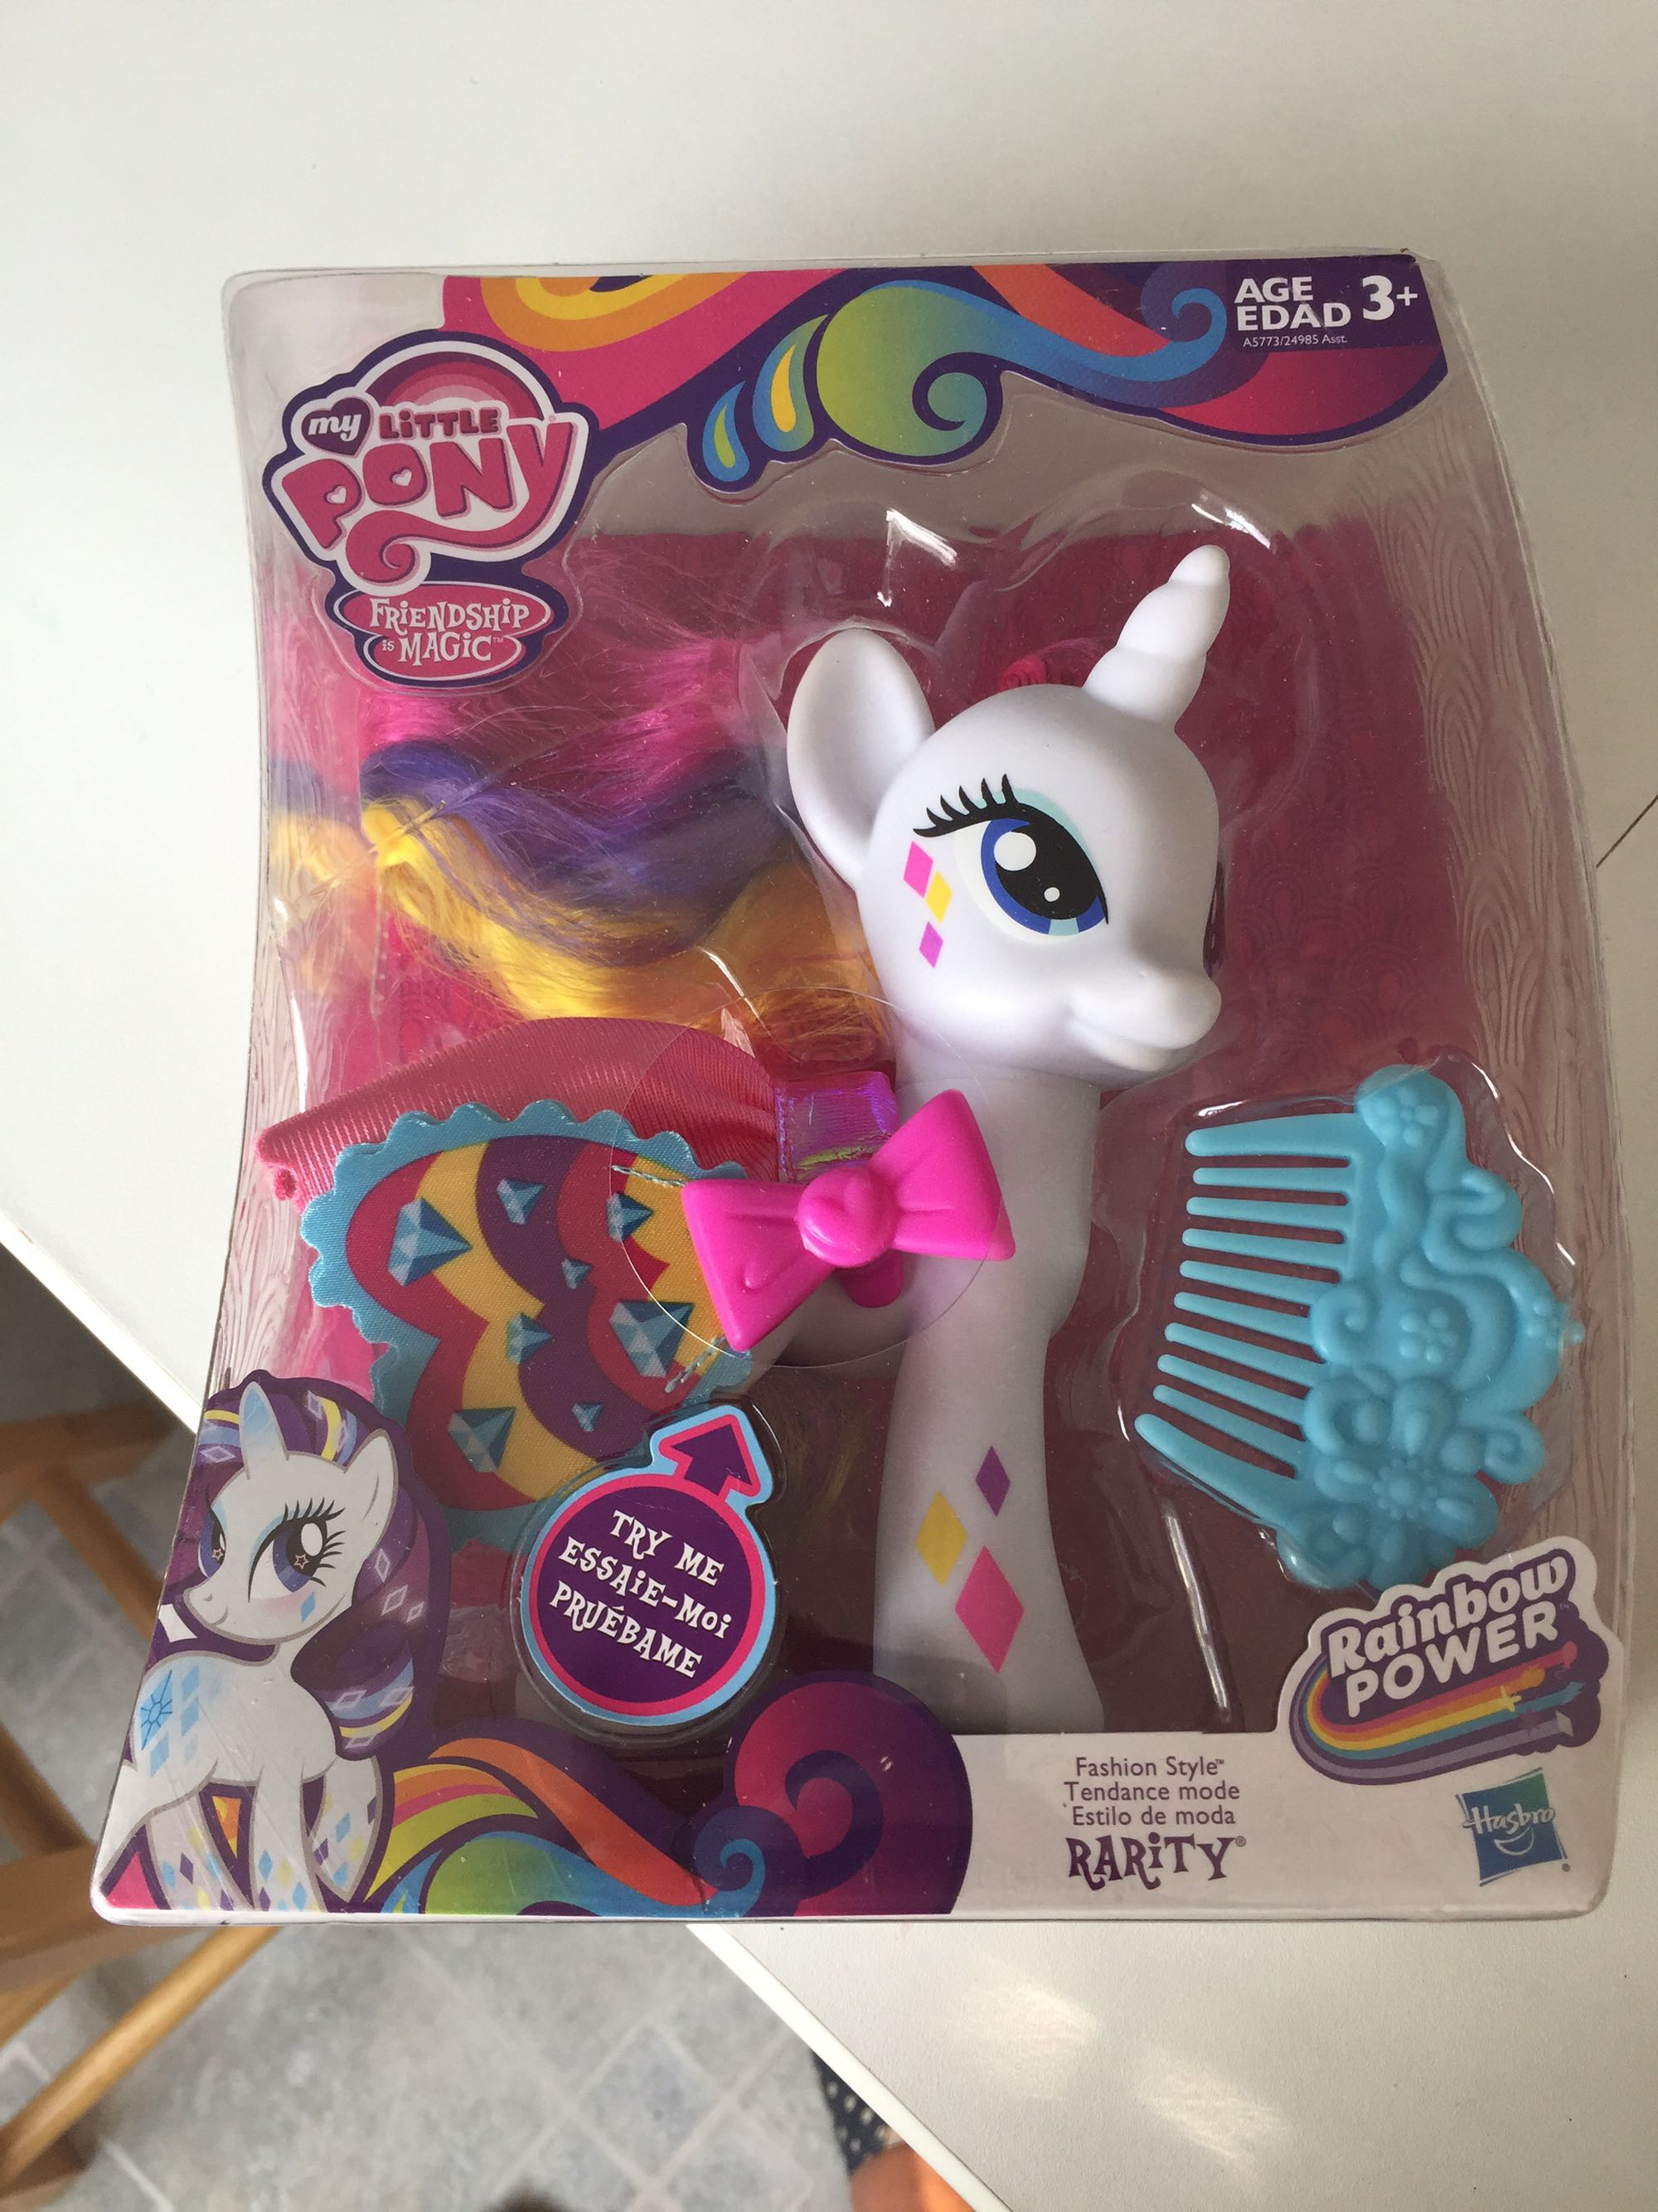 My Little Pony Friendship is Magic toy